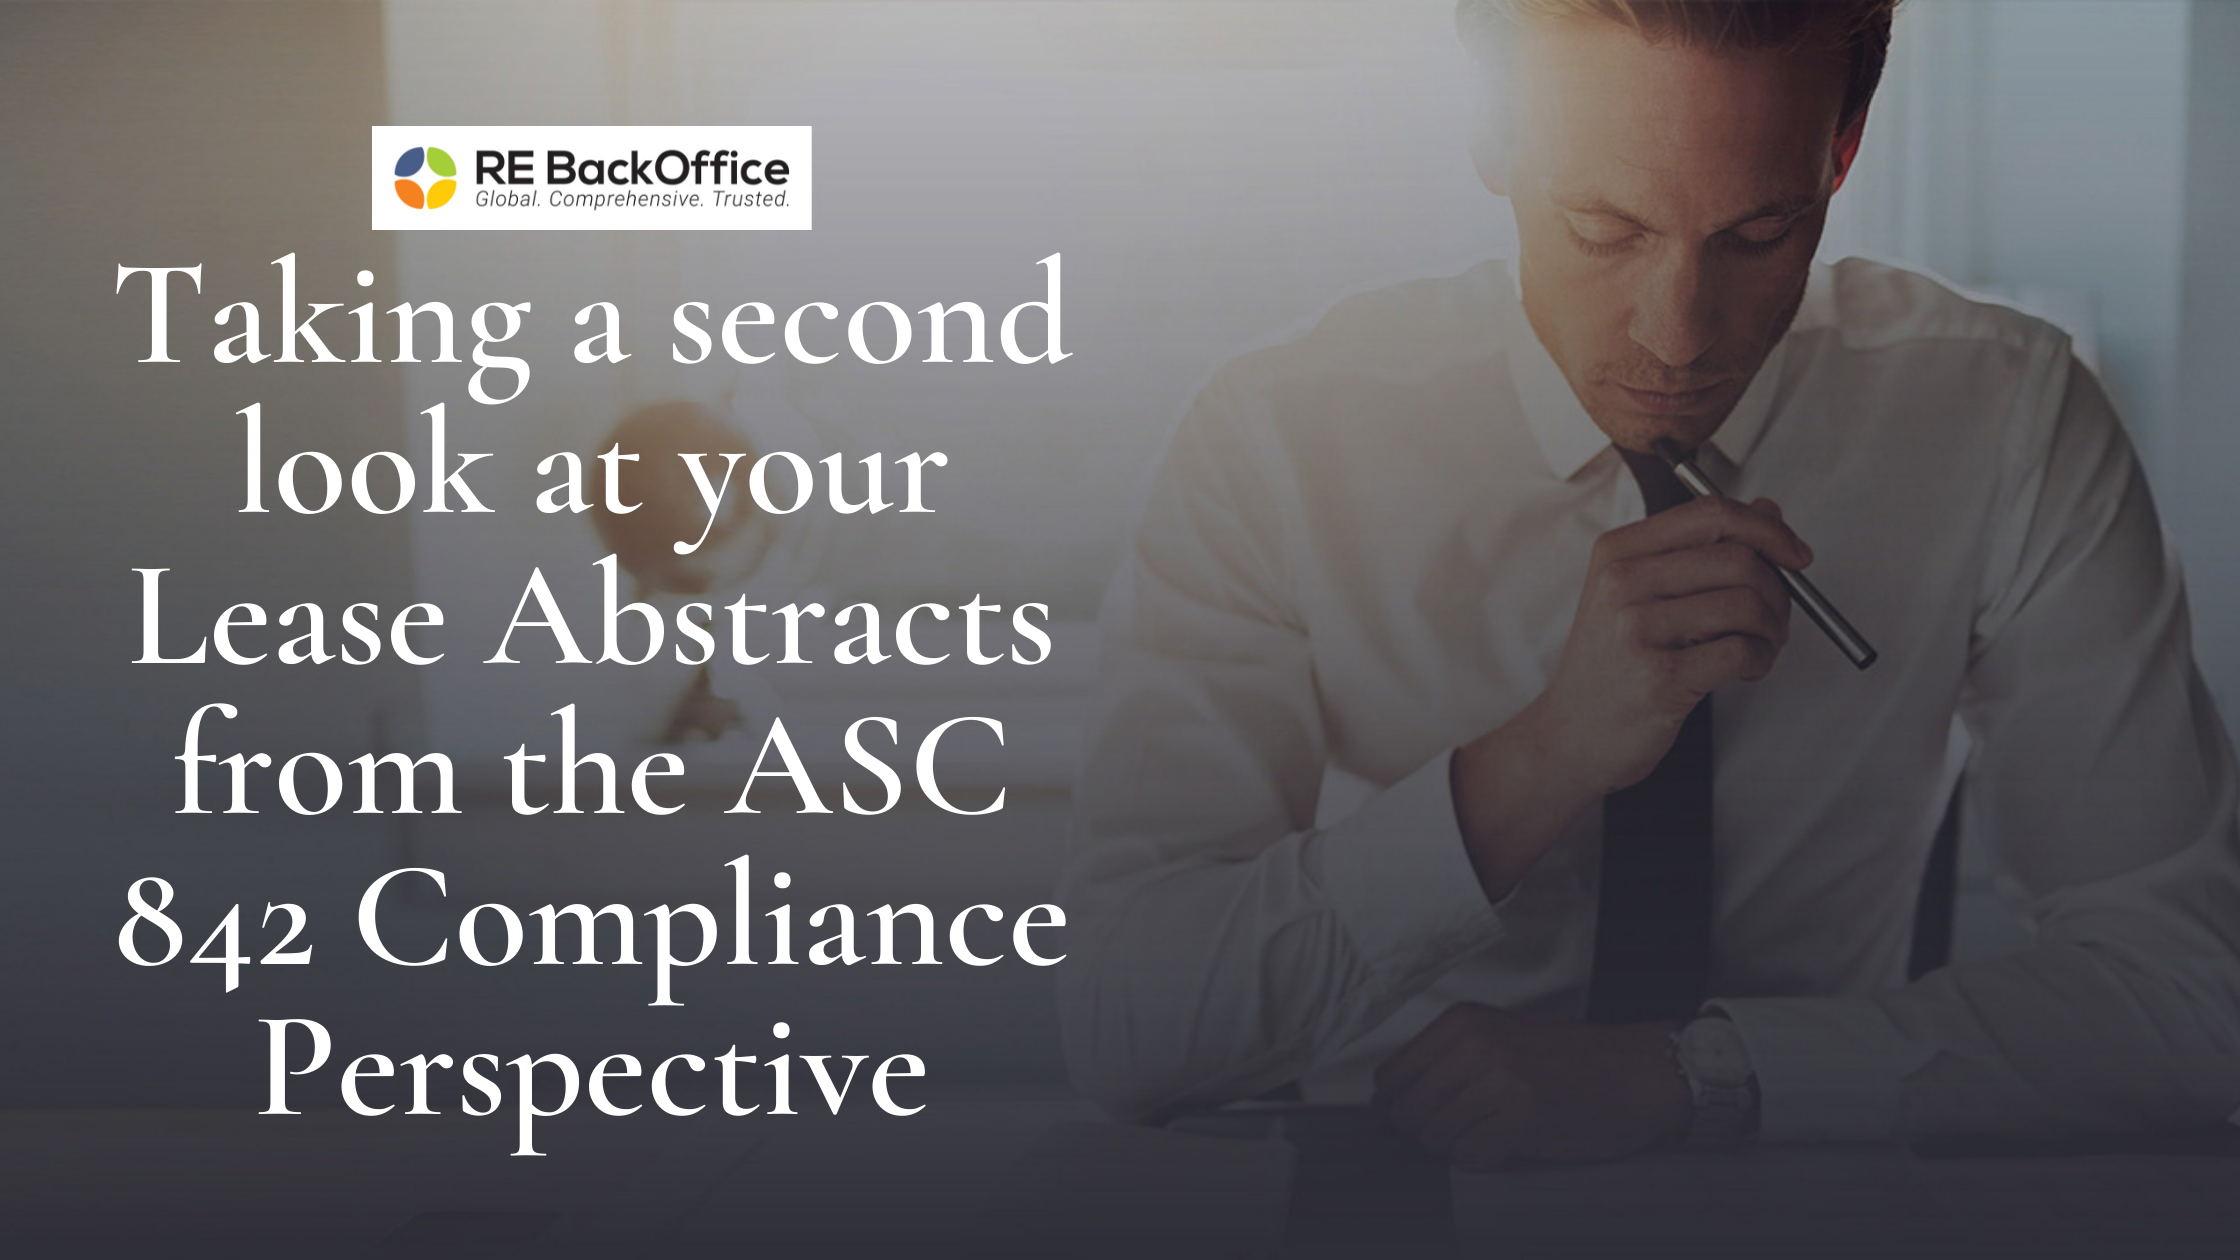 Taking a second look at your Lease Abstracts from the ASC 842 Compliance Perspective